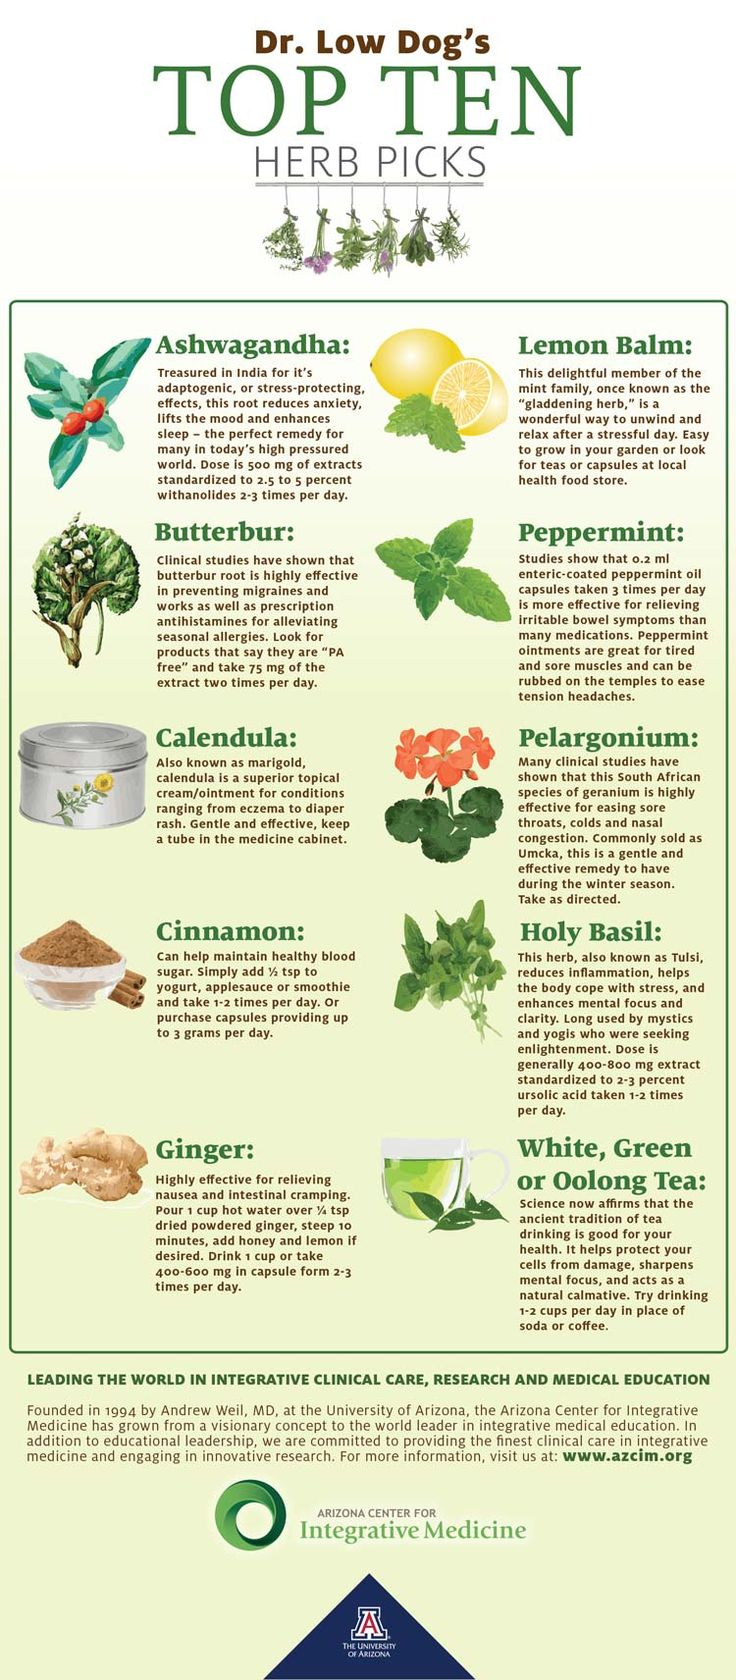 From the University of Arizona Center for Integrative Medicine (AzCIM.org) Dr. Tieraona Low Dog's - Top Ten Herb Picks #integrative #herbs @lowdogmd